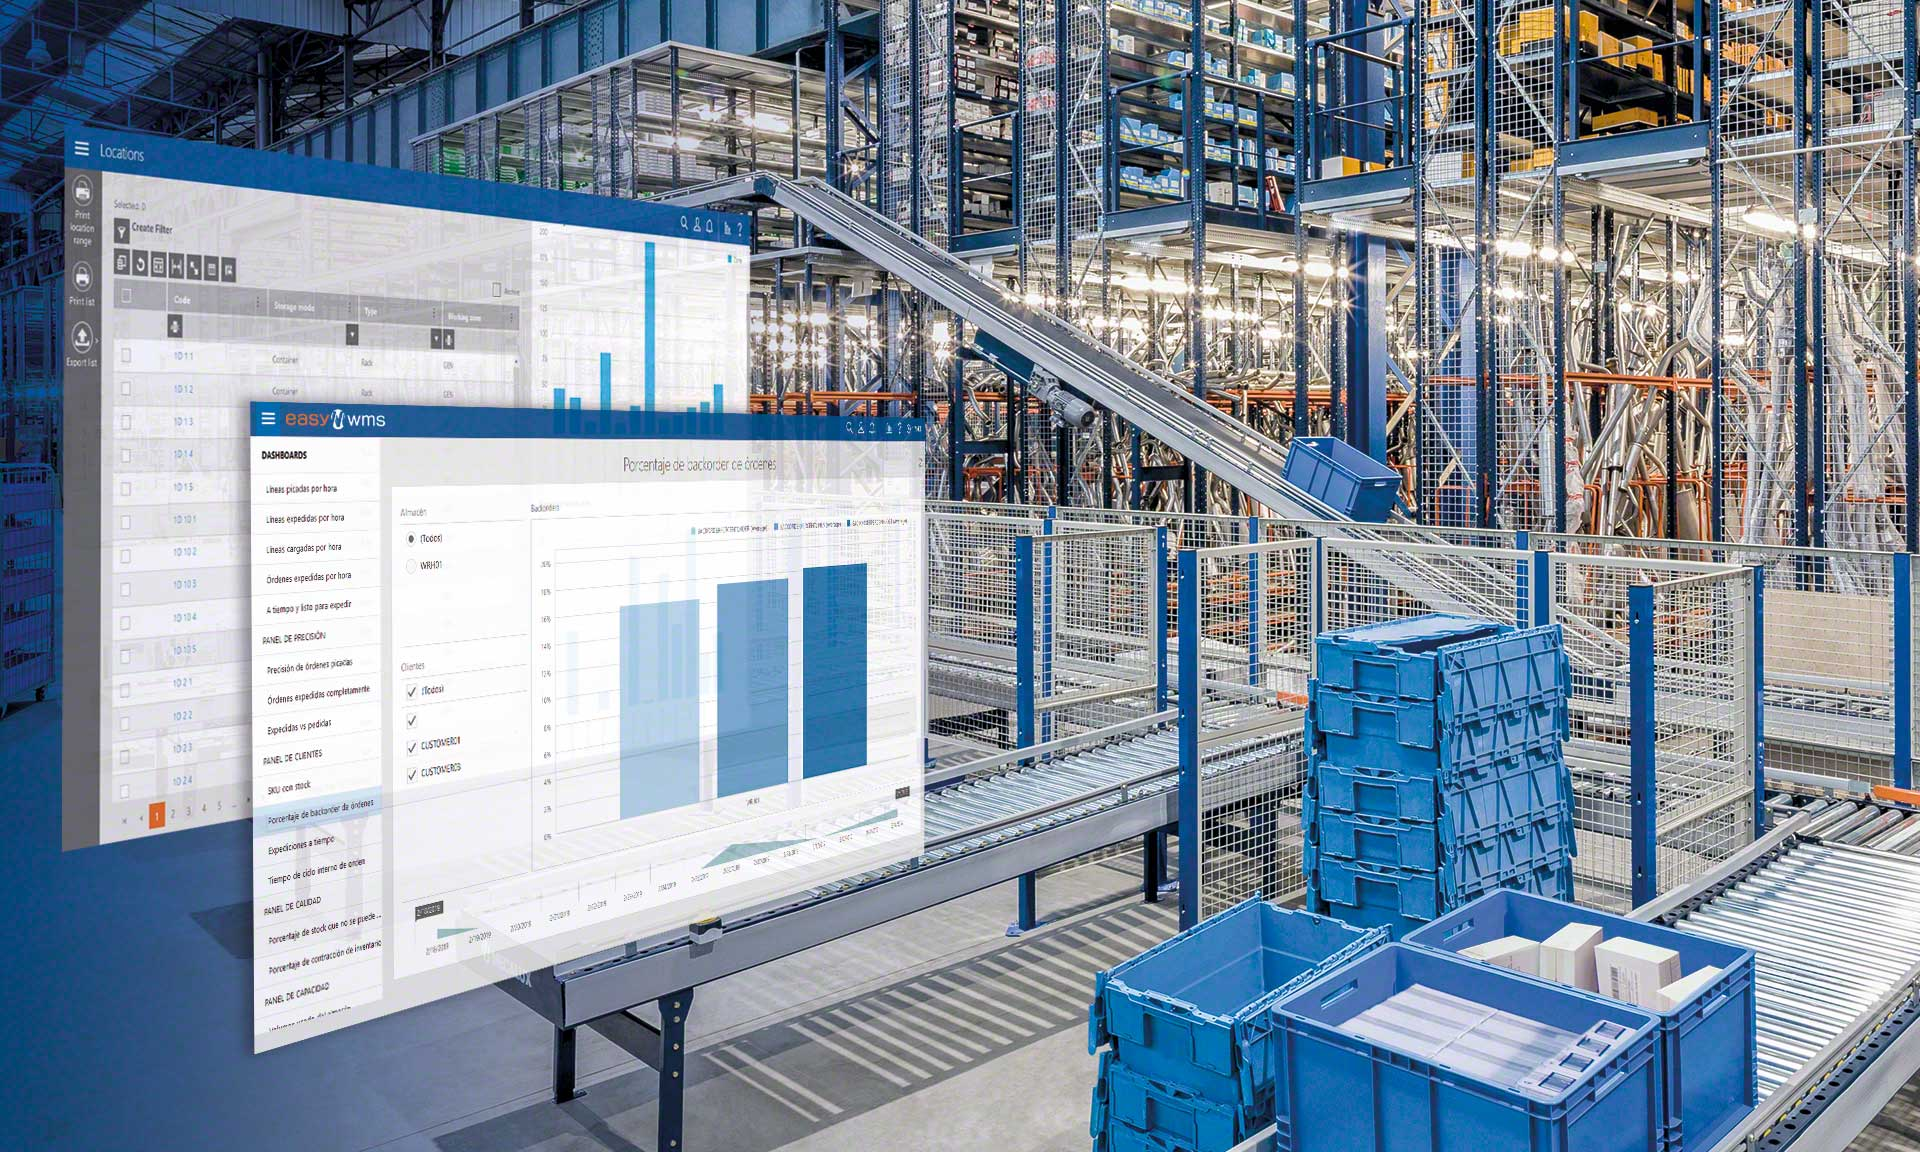 In logistics, hyperautomation consists of digitizing management of the supply chain